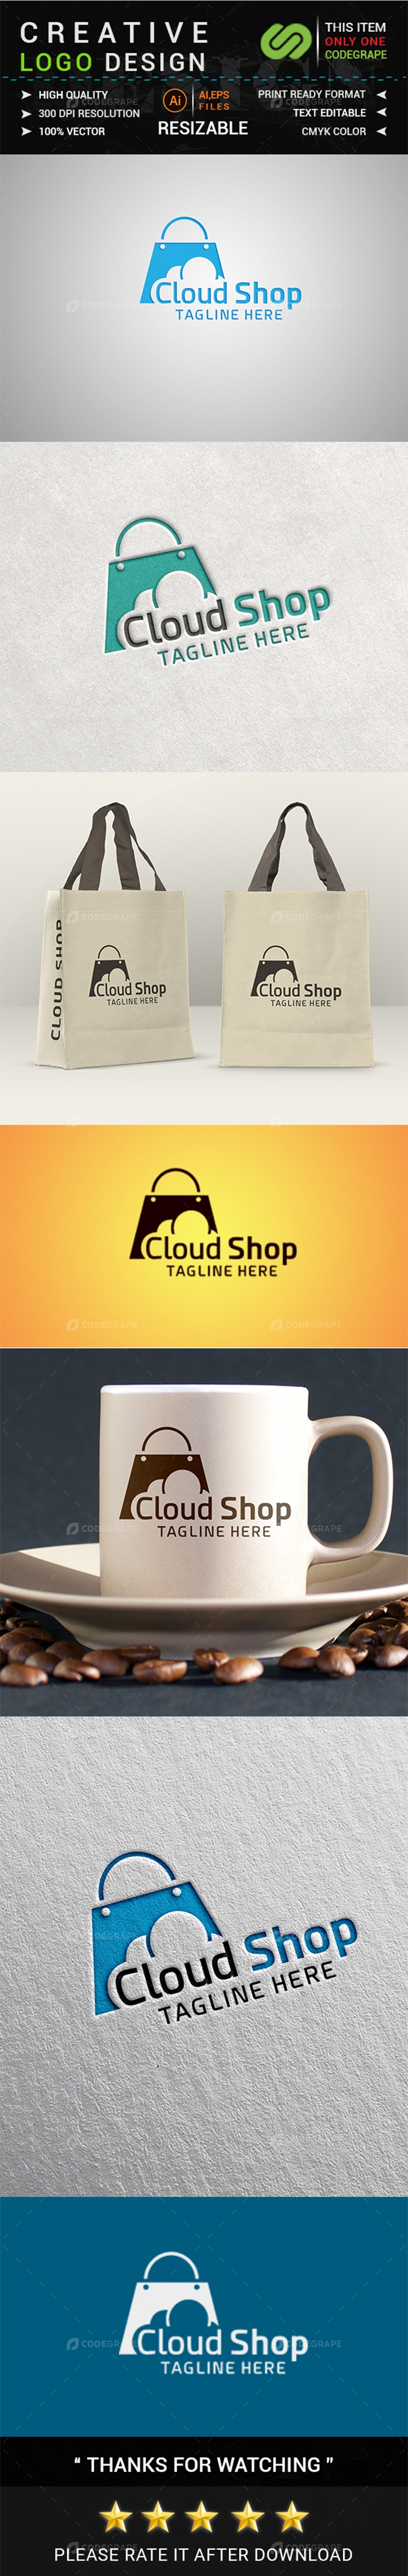 Cloud Shop Logo Design